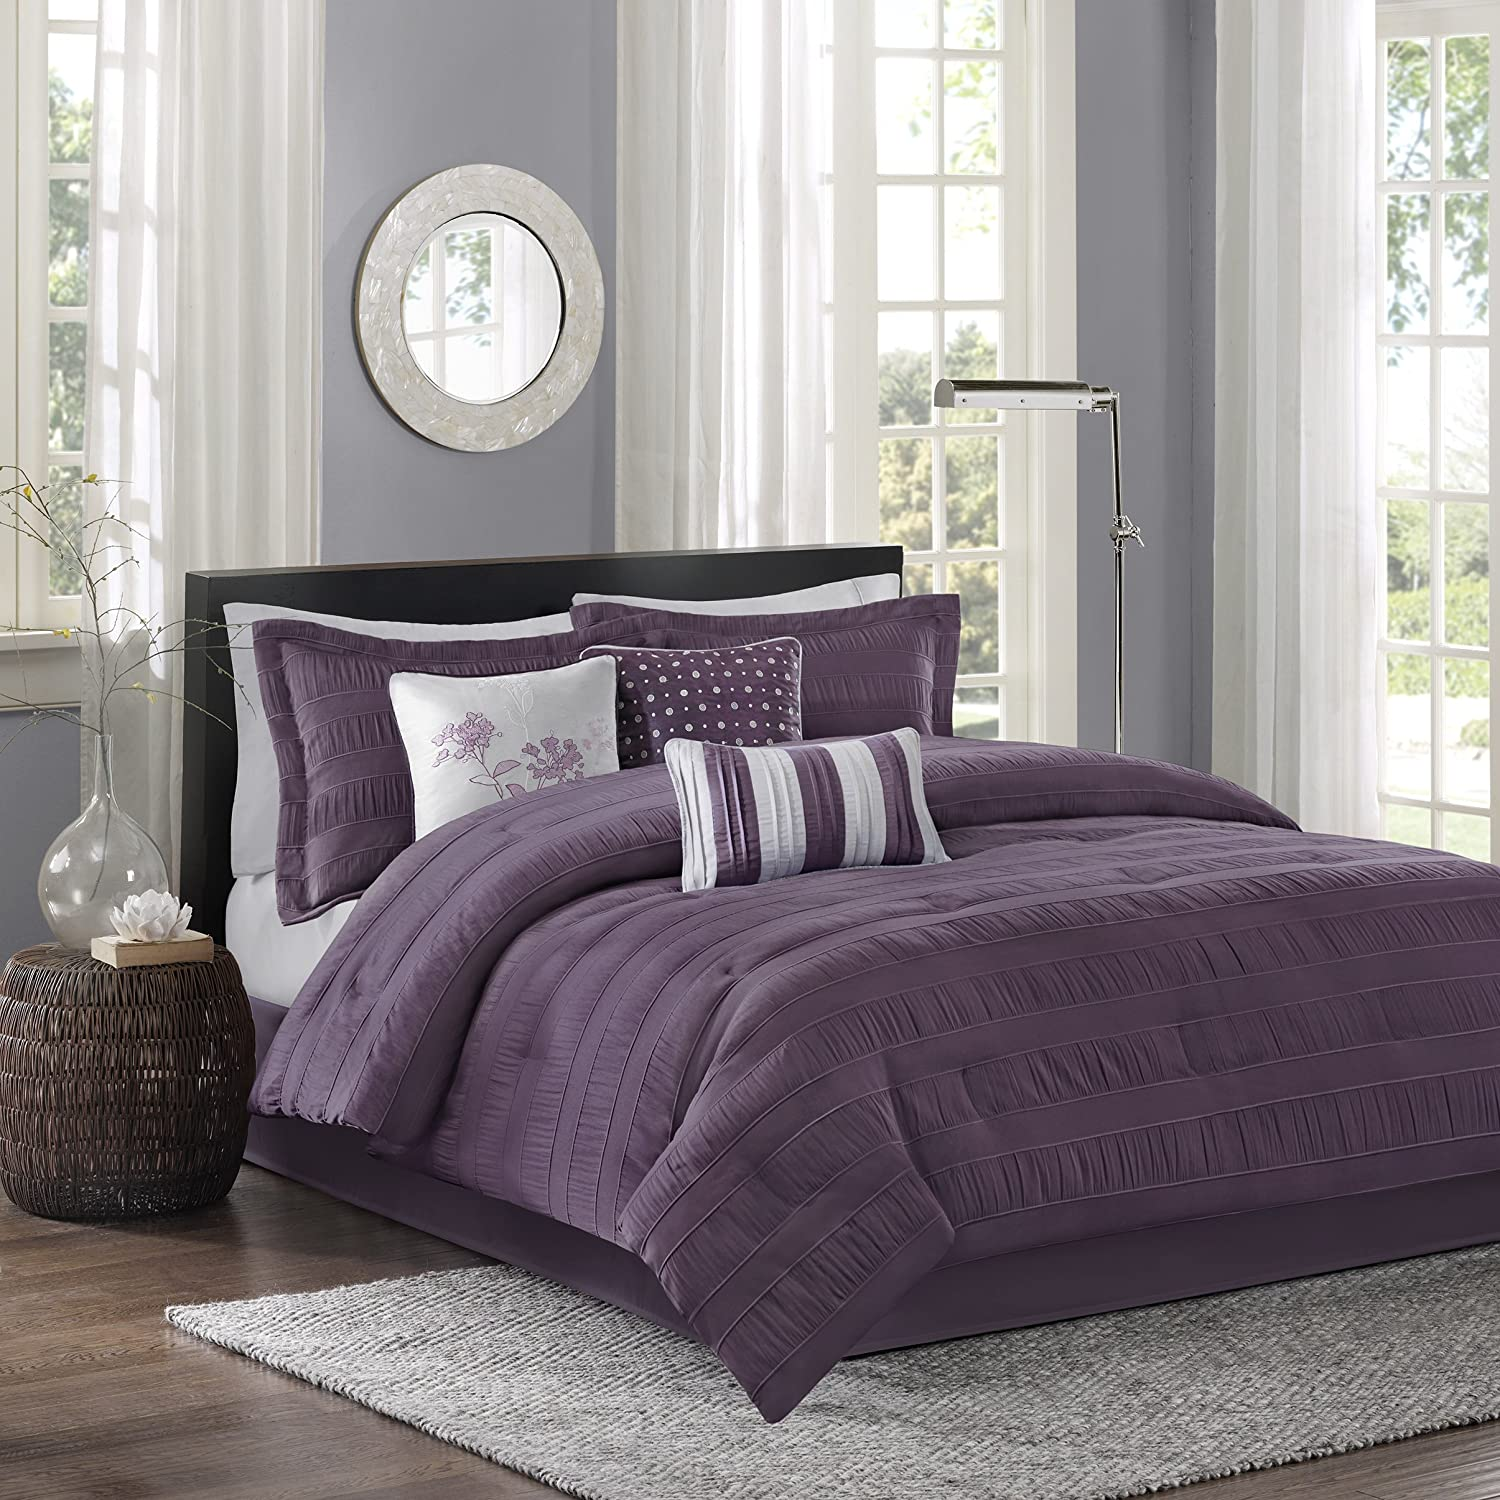 beds sets bed slide purple size by bedroom recent house king with comforter cool ideas kids design